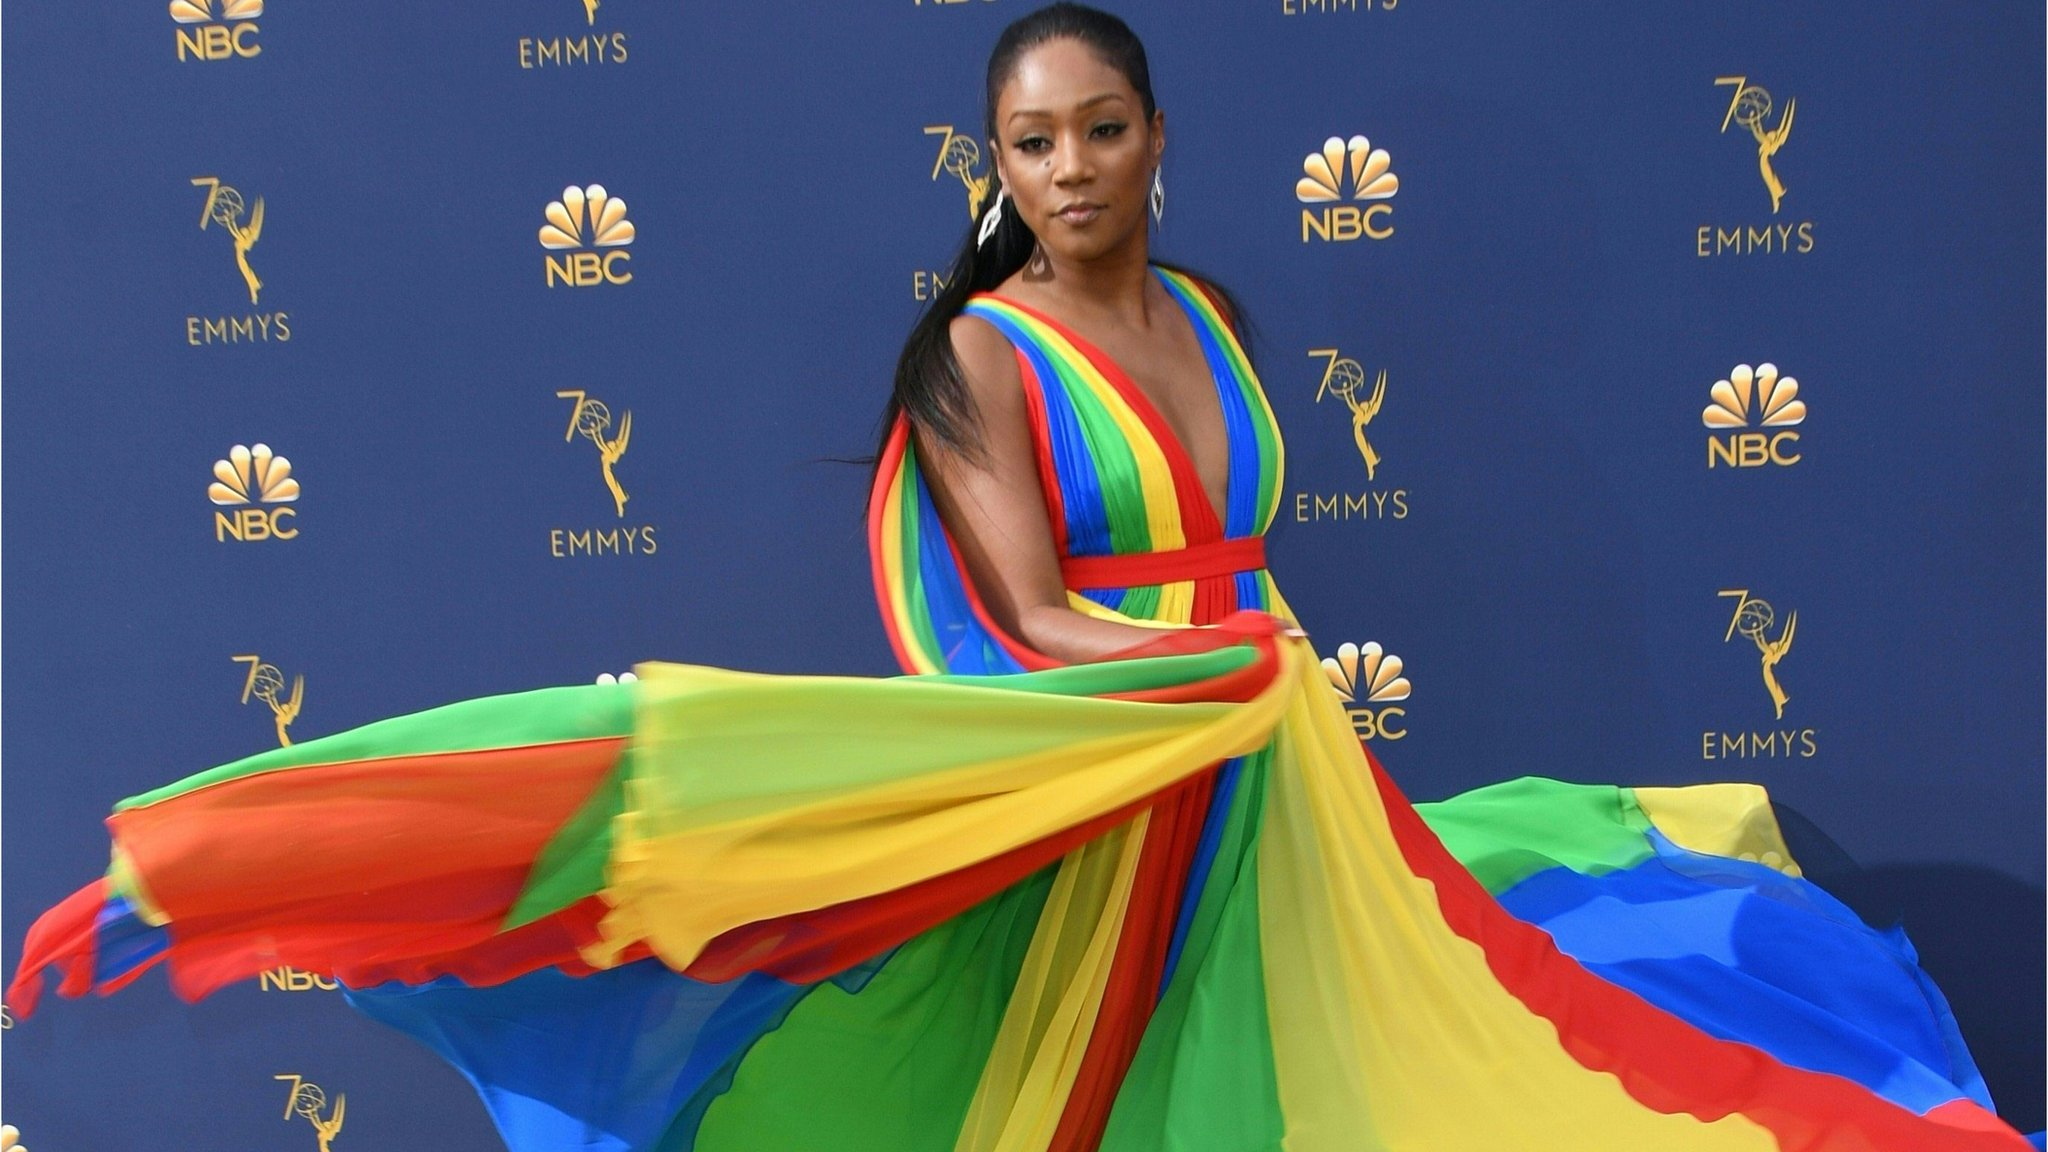 Emmy Awards 2018 red carpet fashion - in pictures